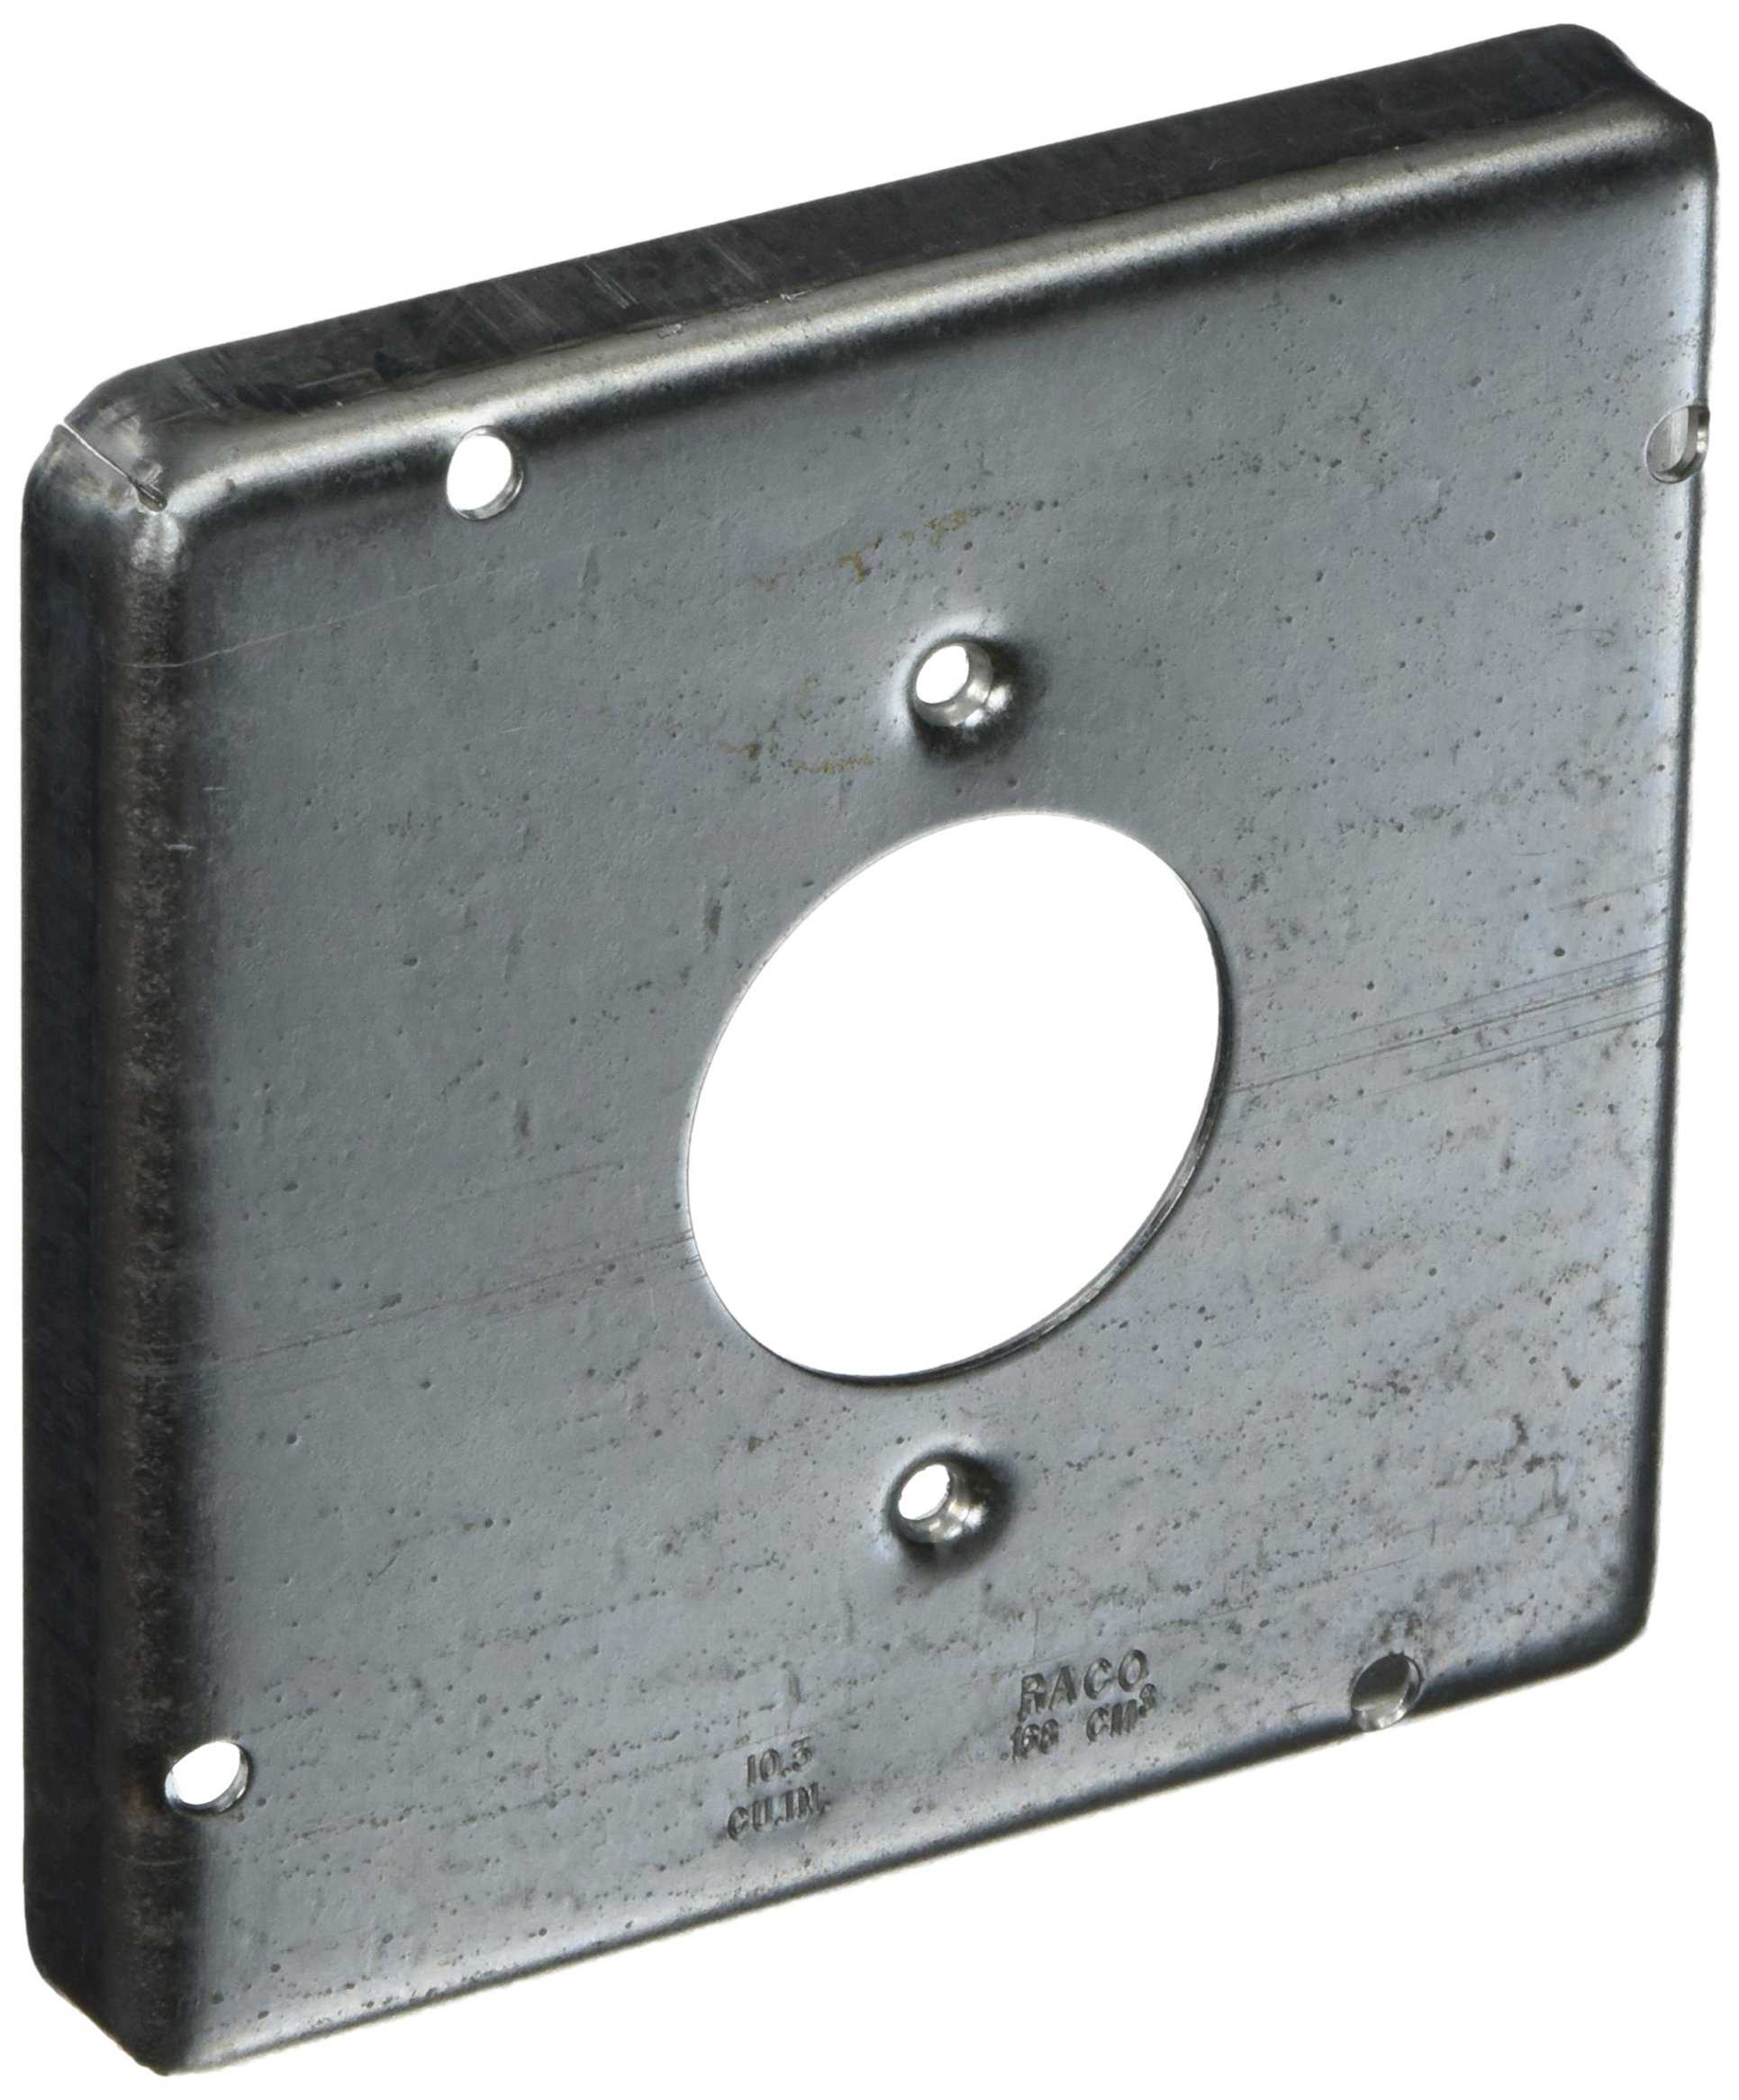 Hubbell-Raco 887 1/2-Inch Raised Square Cover with (1) 1.59-Inch Diameter 20 Amp Receptacle, 4-11/16-Inch